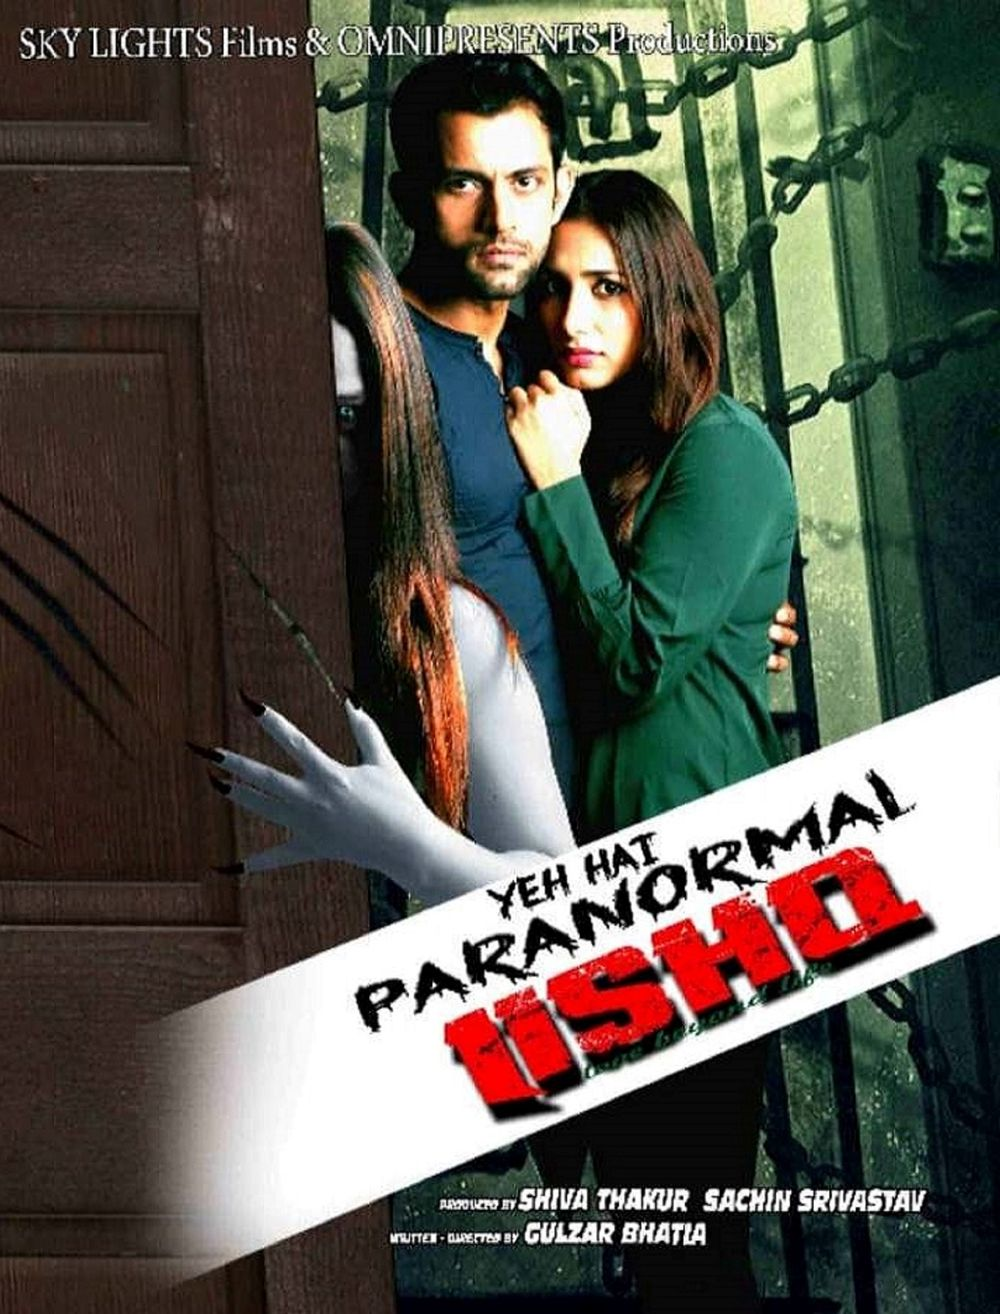 Yeh Hai Paranormal Ishq Movie Review